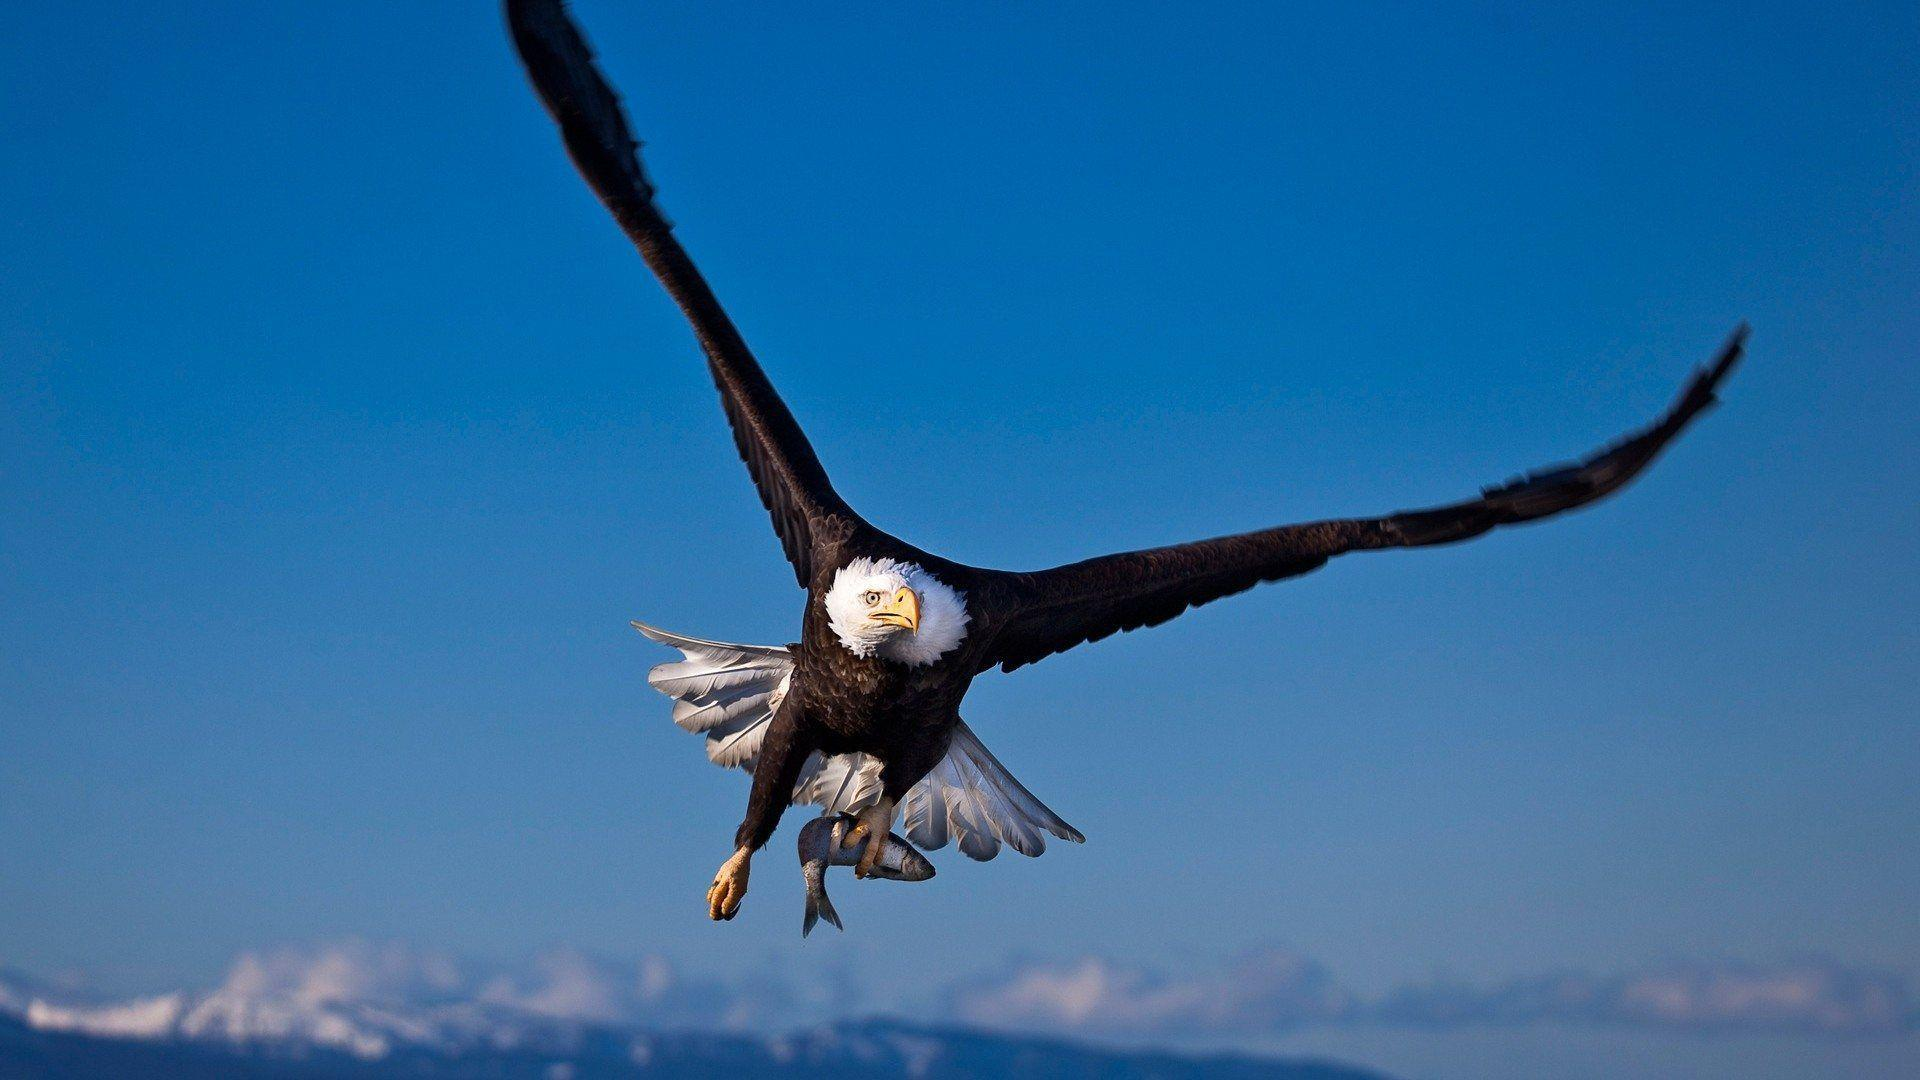 Animals For > American Eagle Hd Wallpapers